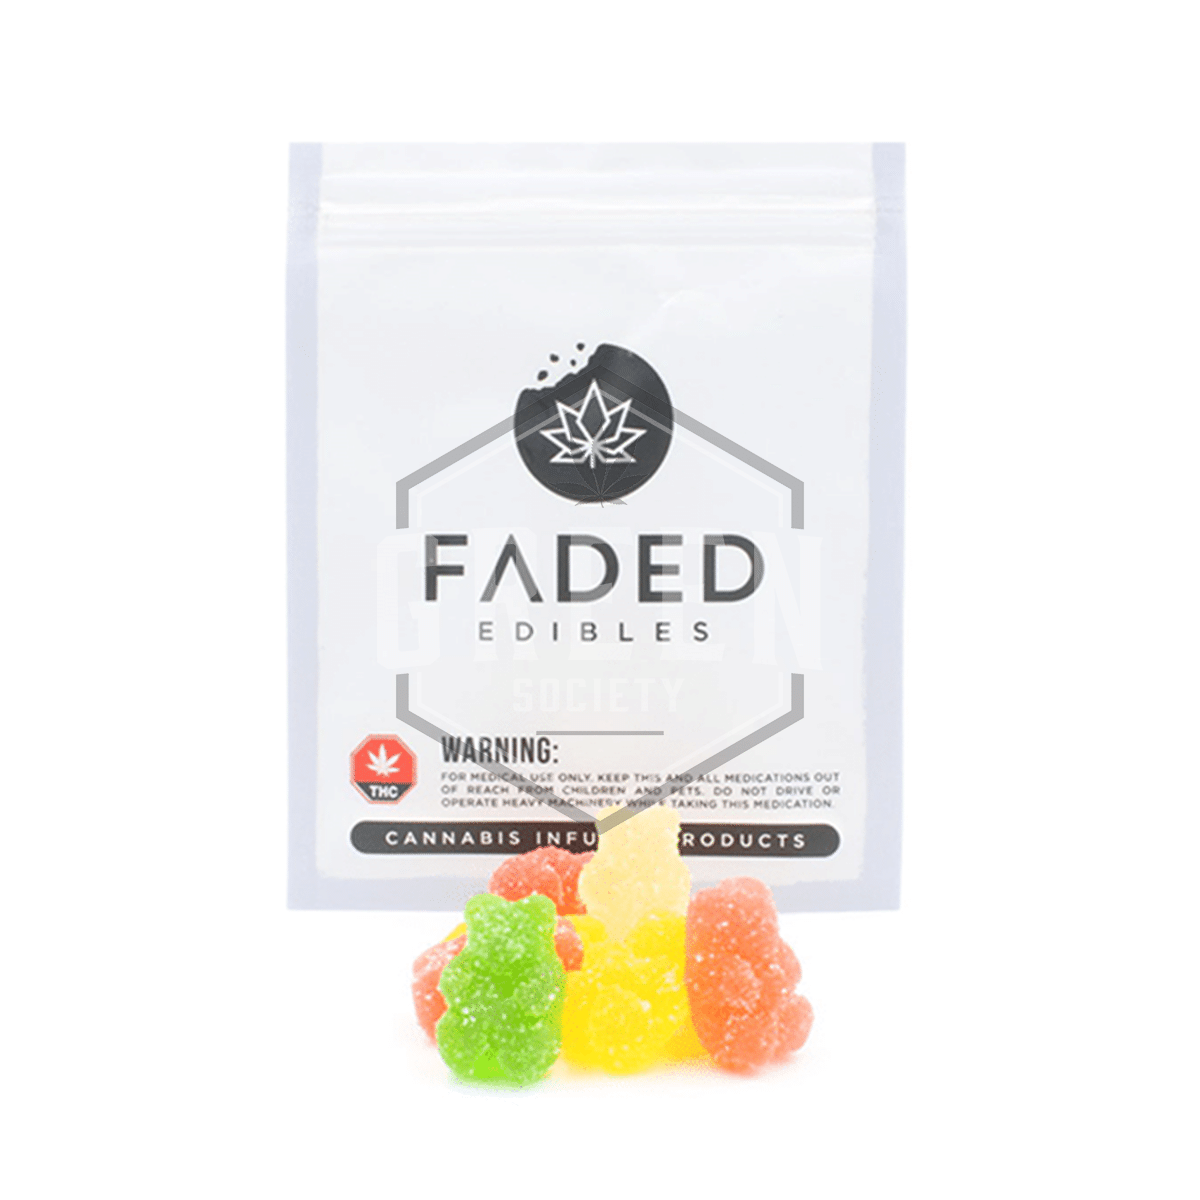 Sour Gummy Bears by Faded Cannabis Co. by Green Society - Image © 2018 Green Society. All Rights Reserved.